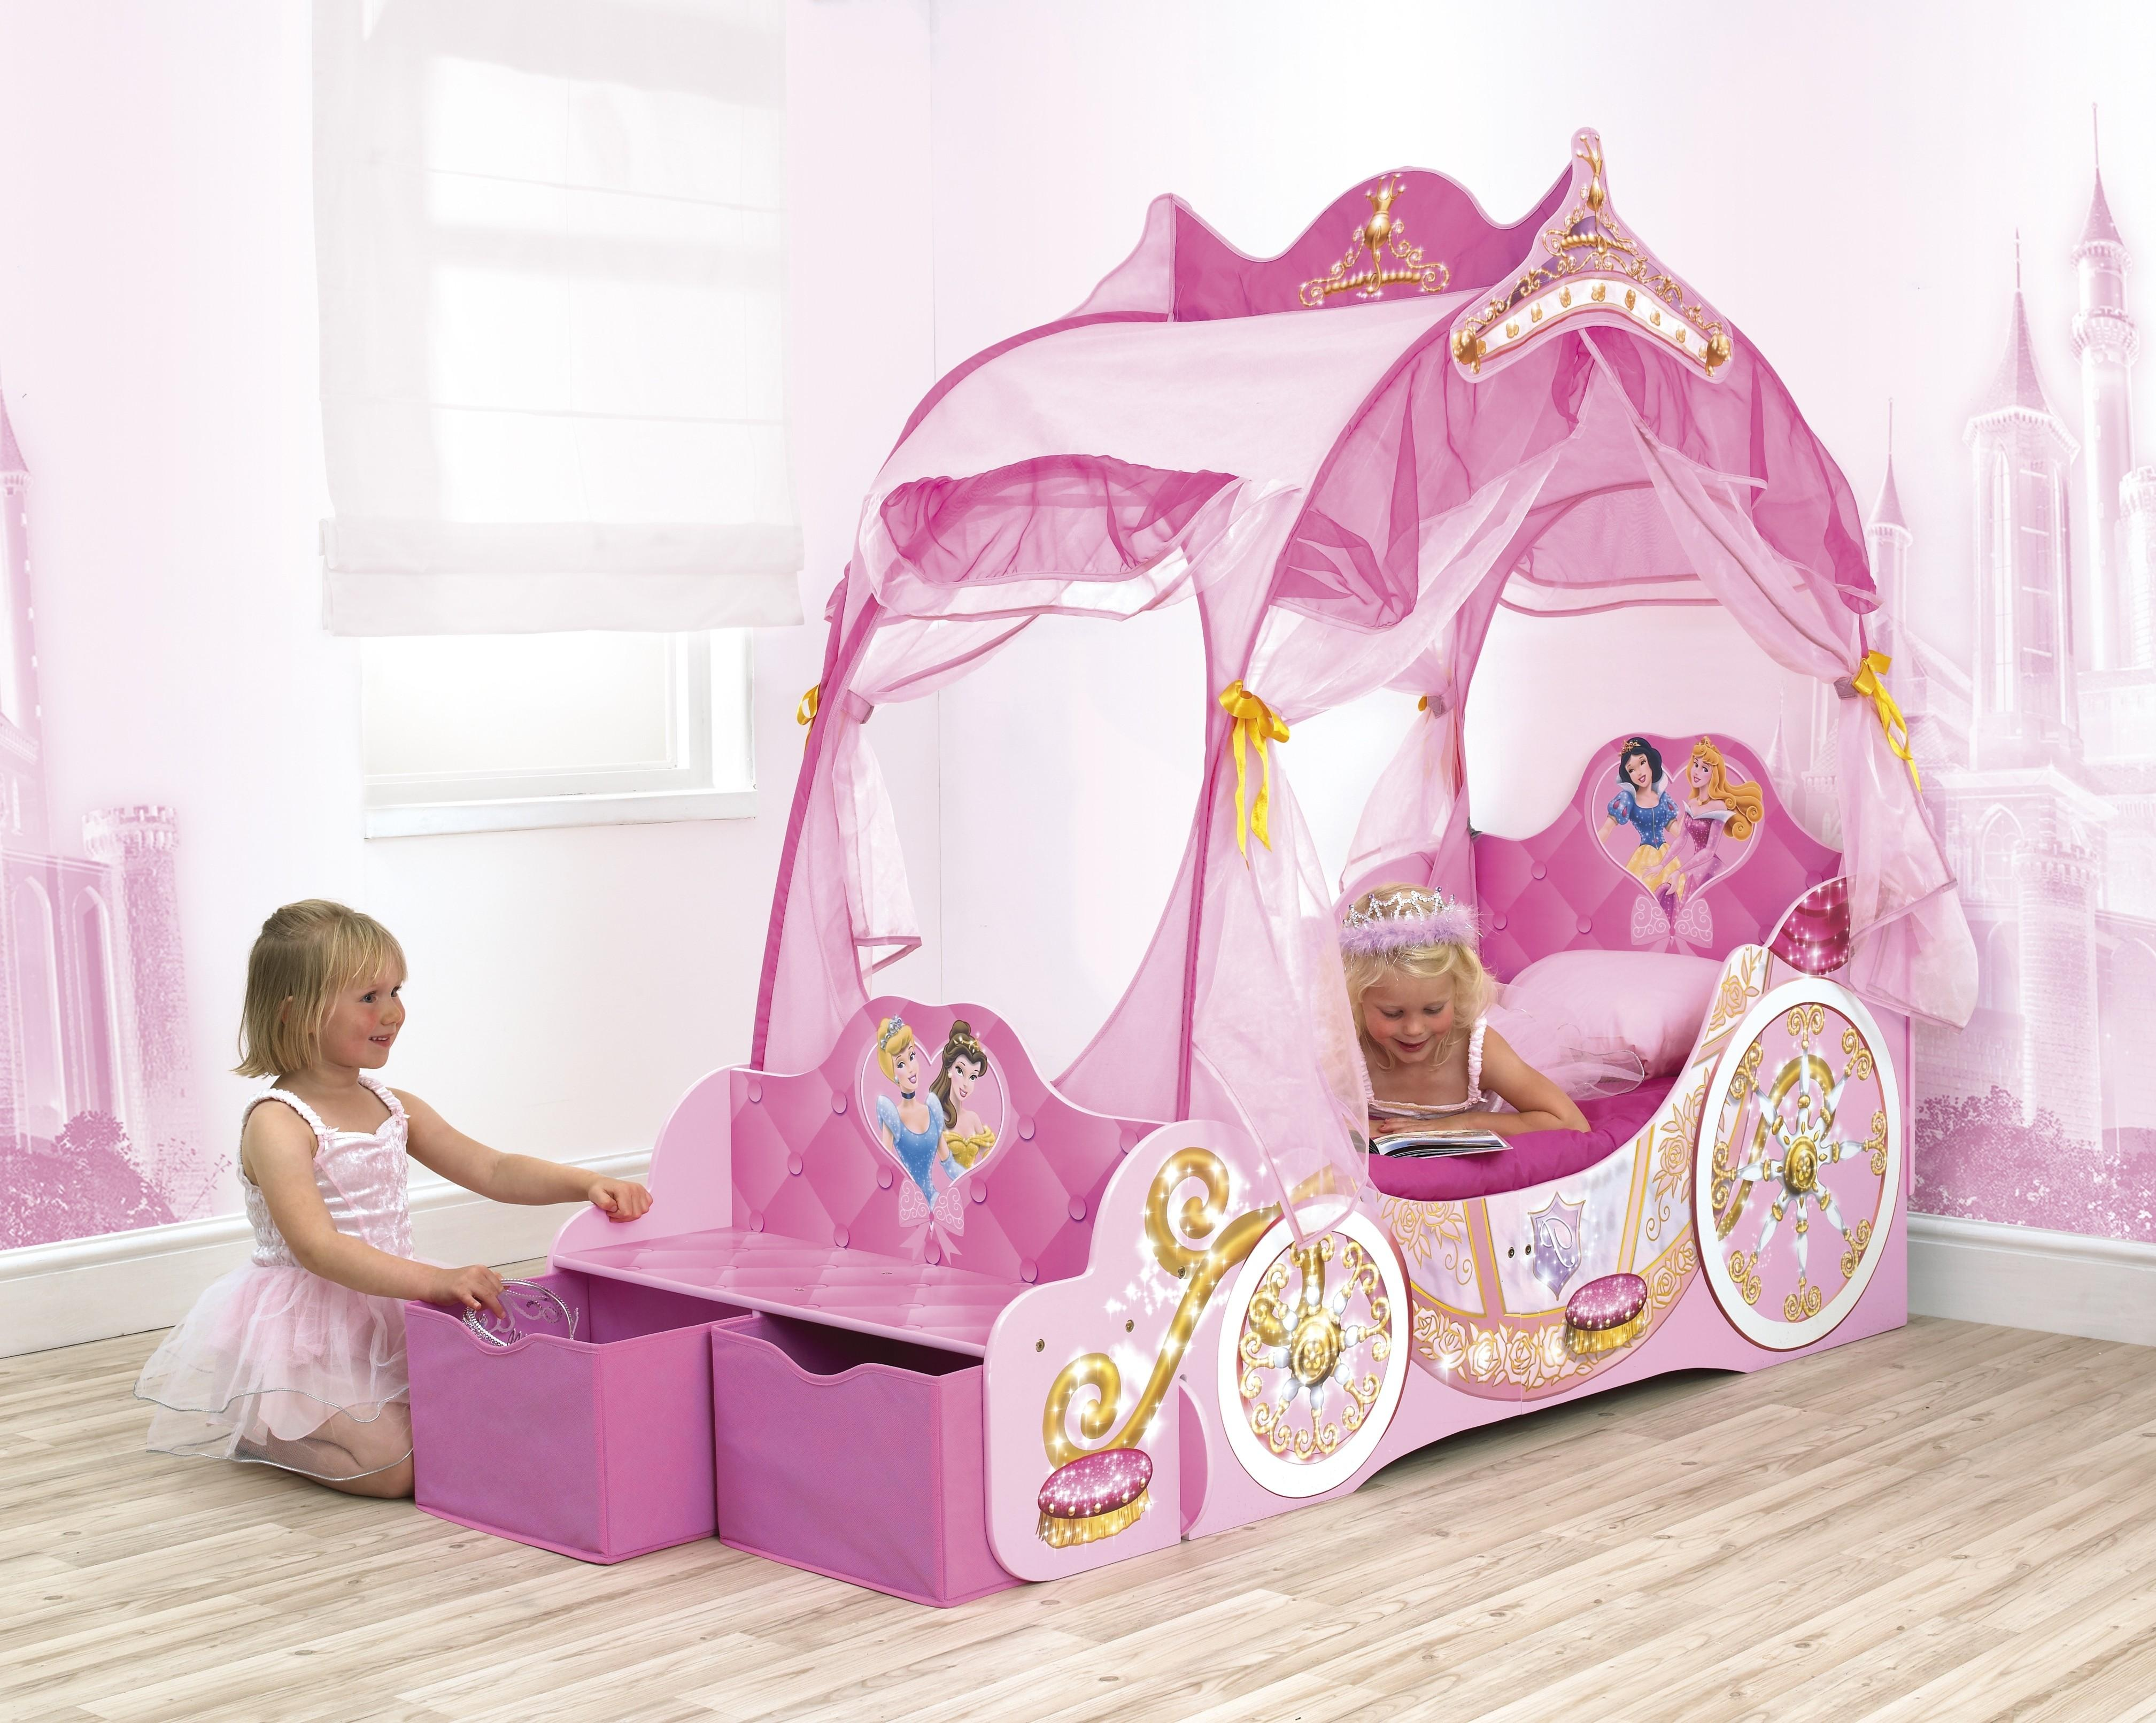 Kids Room Great Exciting Little Girl Princess Ideas New